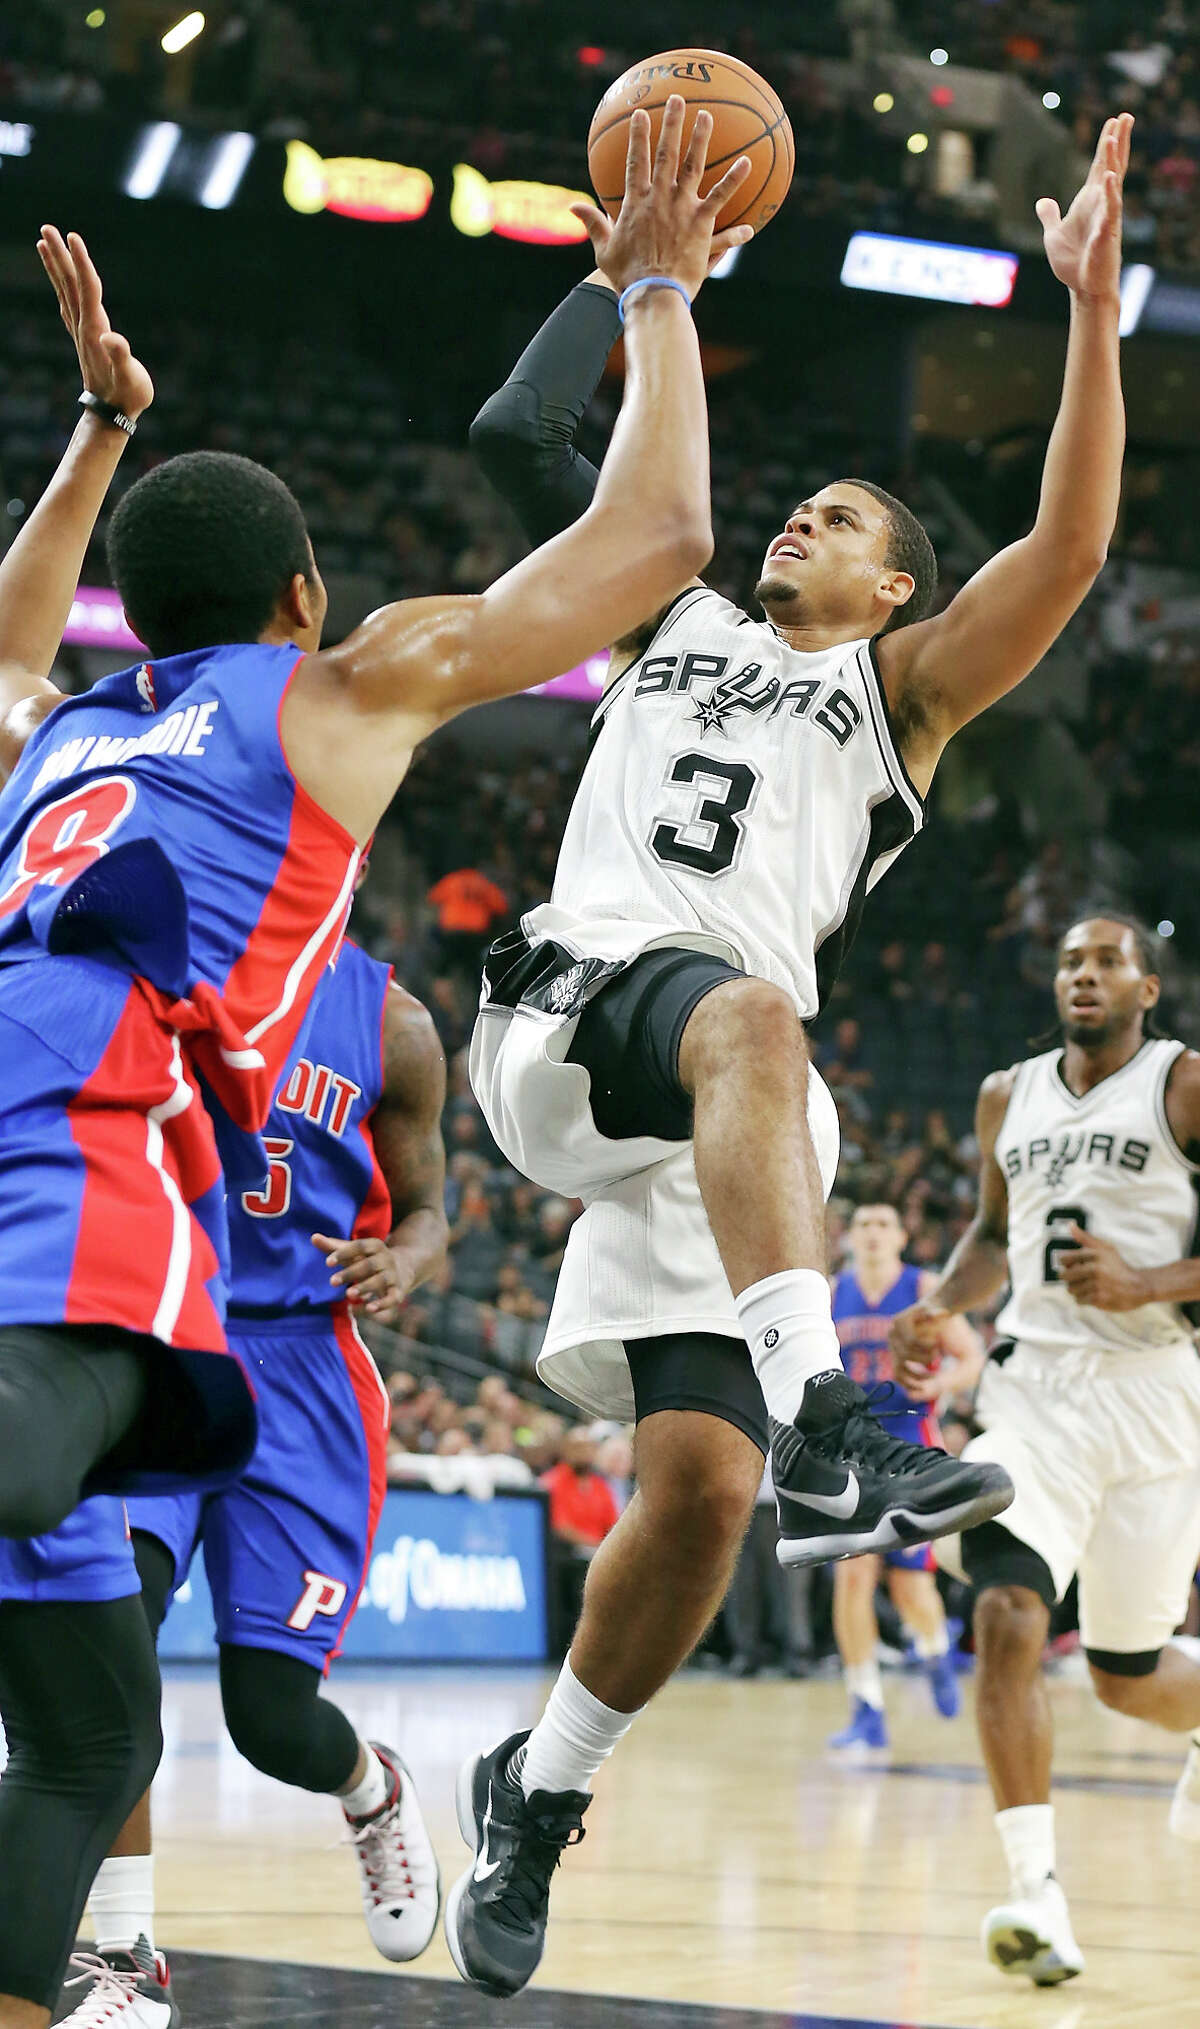 Spurs' Ray McCallum shoots around Pistons' Spencer Dinwiddie during first half action Sunday Oct. 18, 2015 at the AT&T Center.